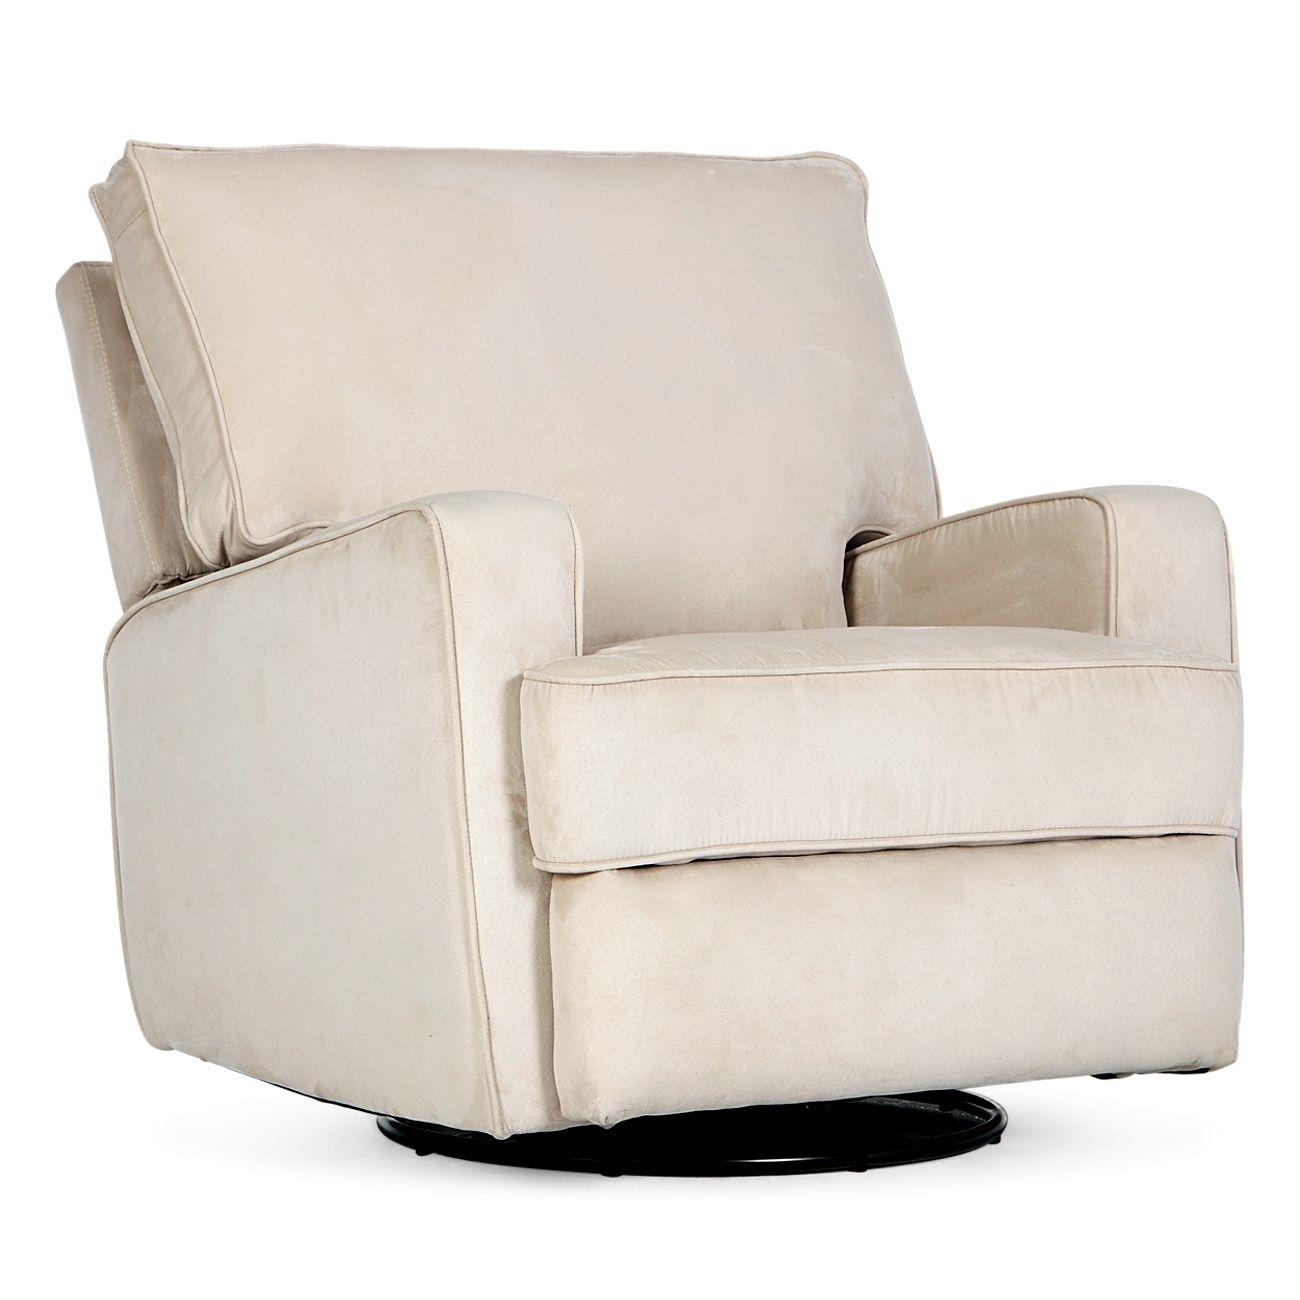 Swivel Living Room Chairs Belleze Swivel Glider Recliner Padded Backrest W Extra Cushion Linen Living Room Chair